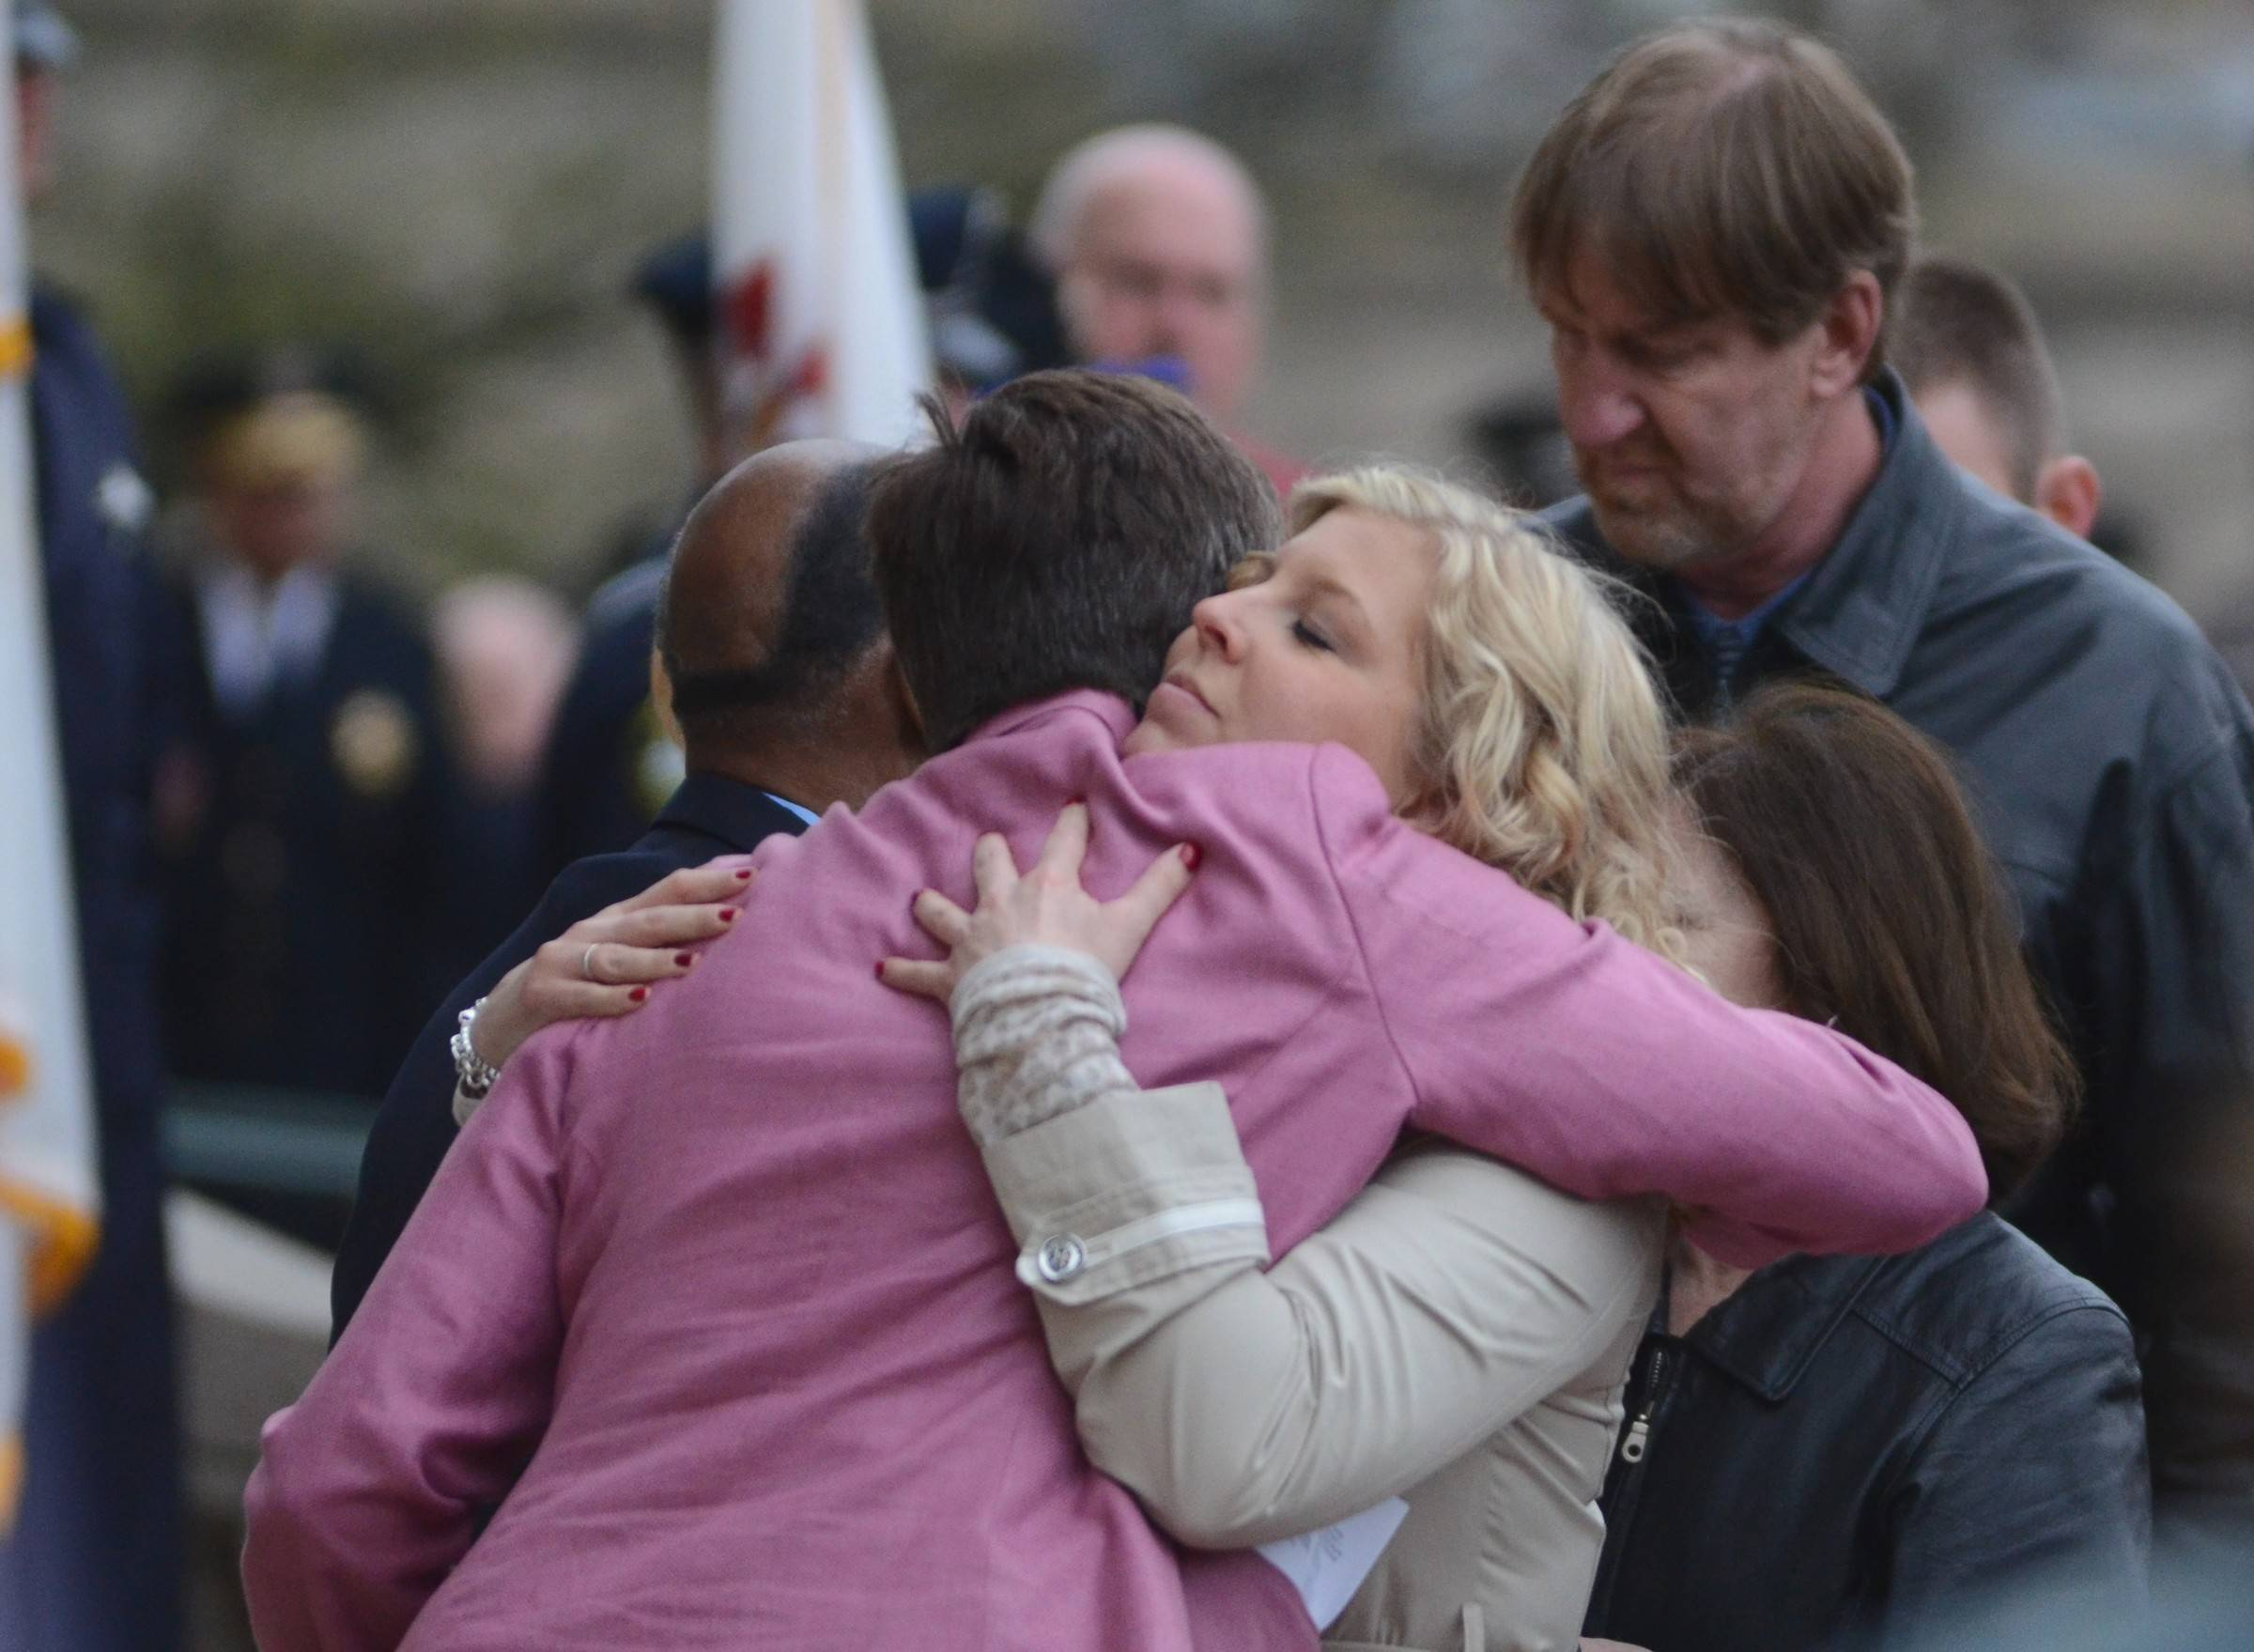 Elizabeth Sauter, widow of deceased Illinois State Police trooper James Sauter, shares a hug with Lt. Gov. Sheila Simon before receiving a plaque in her husband's honor.